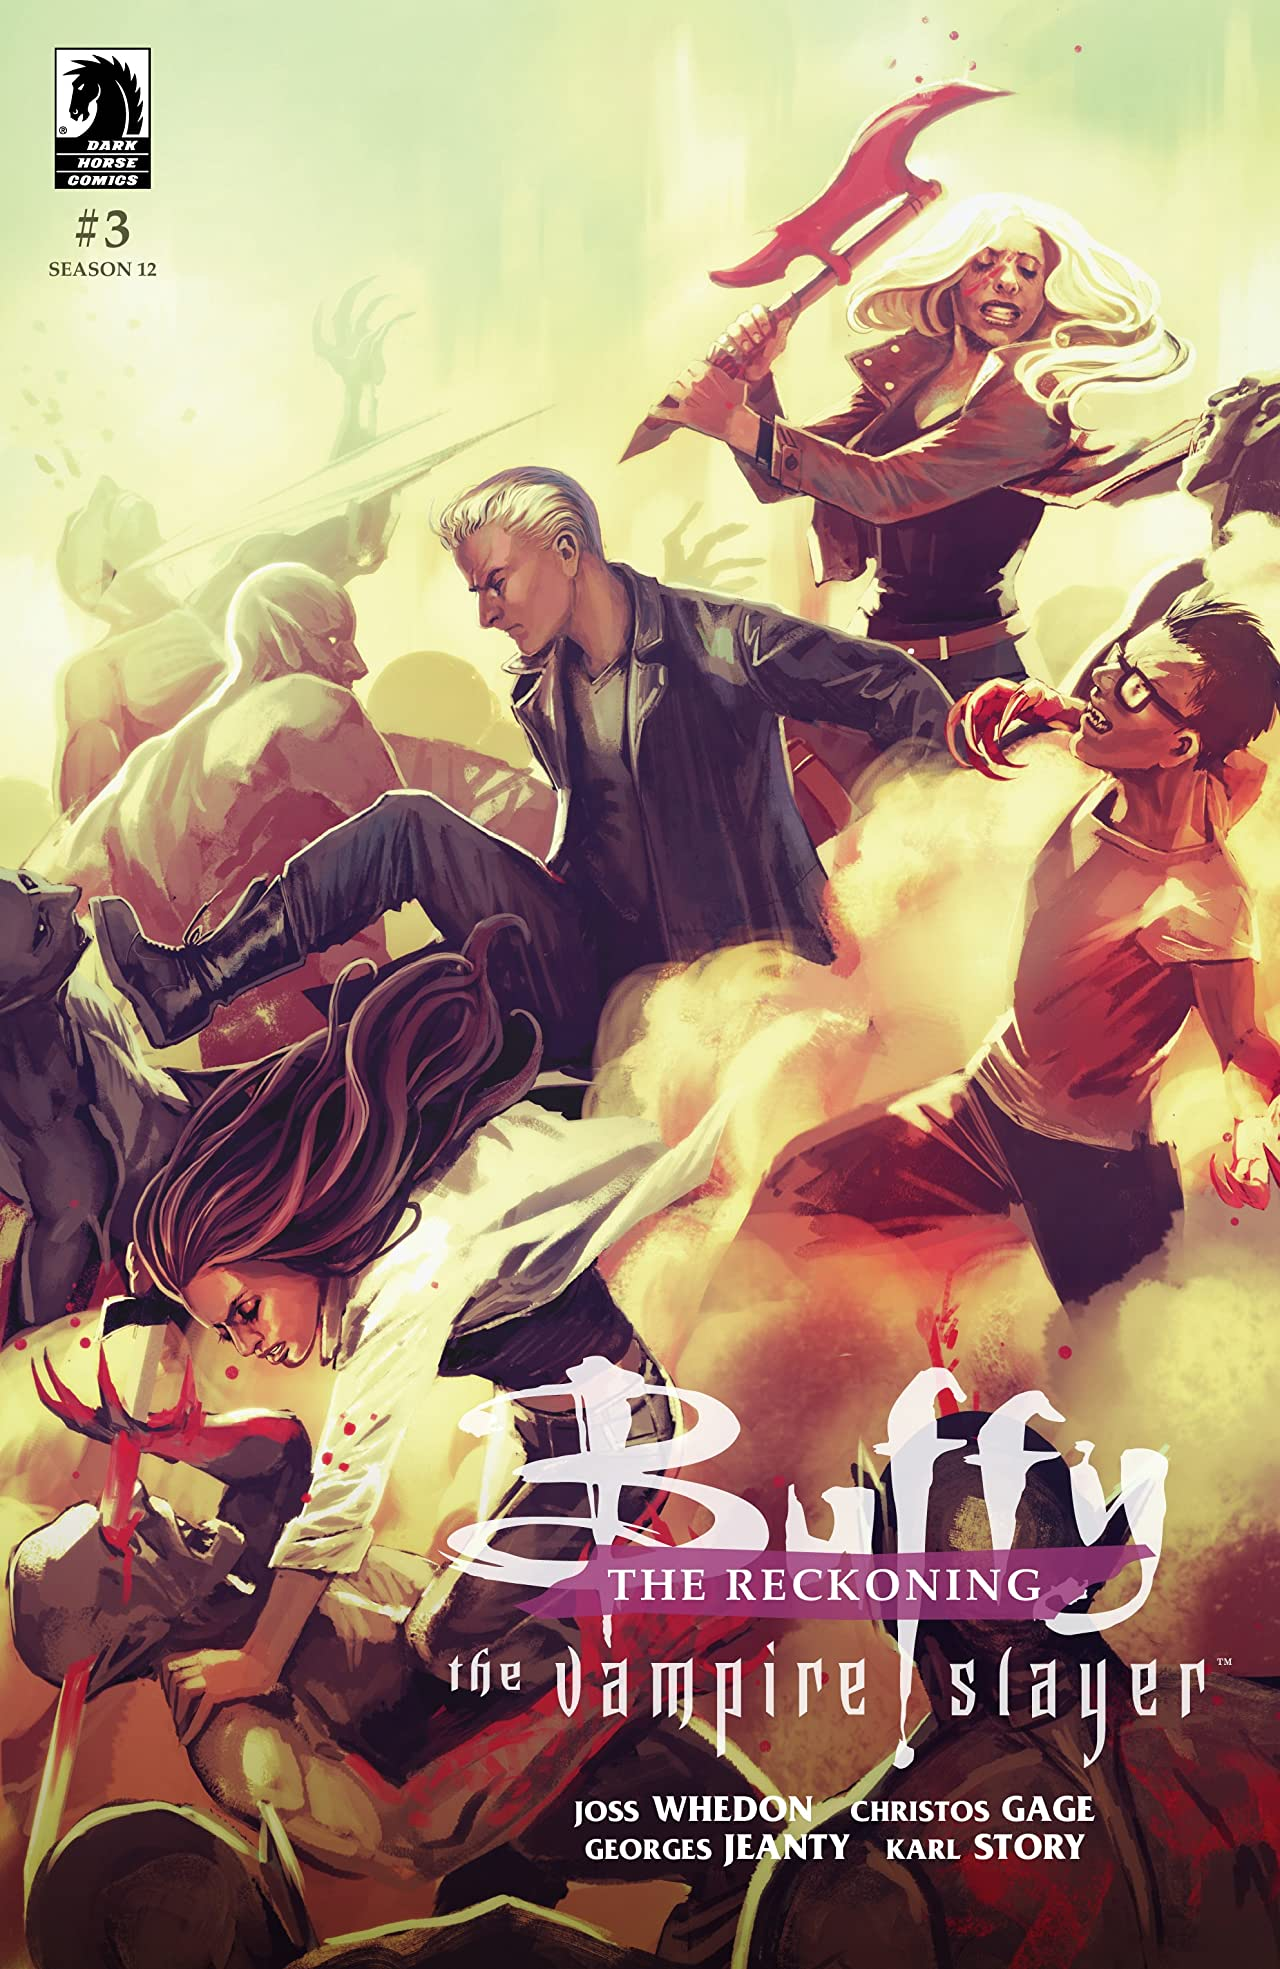 Buffy the Vampire Slayer Season 12: The Reckoning No.3